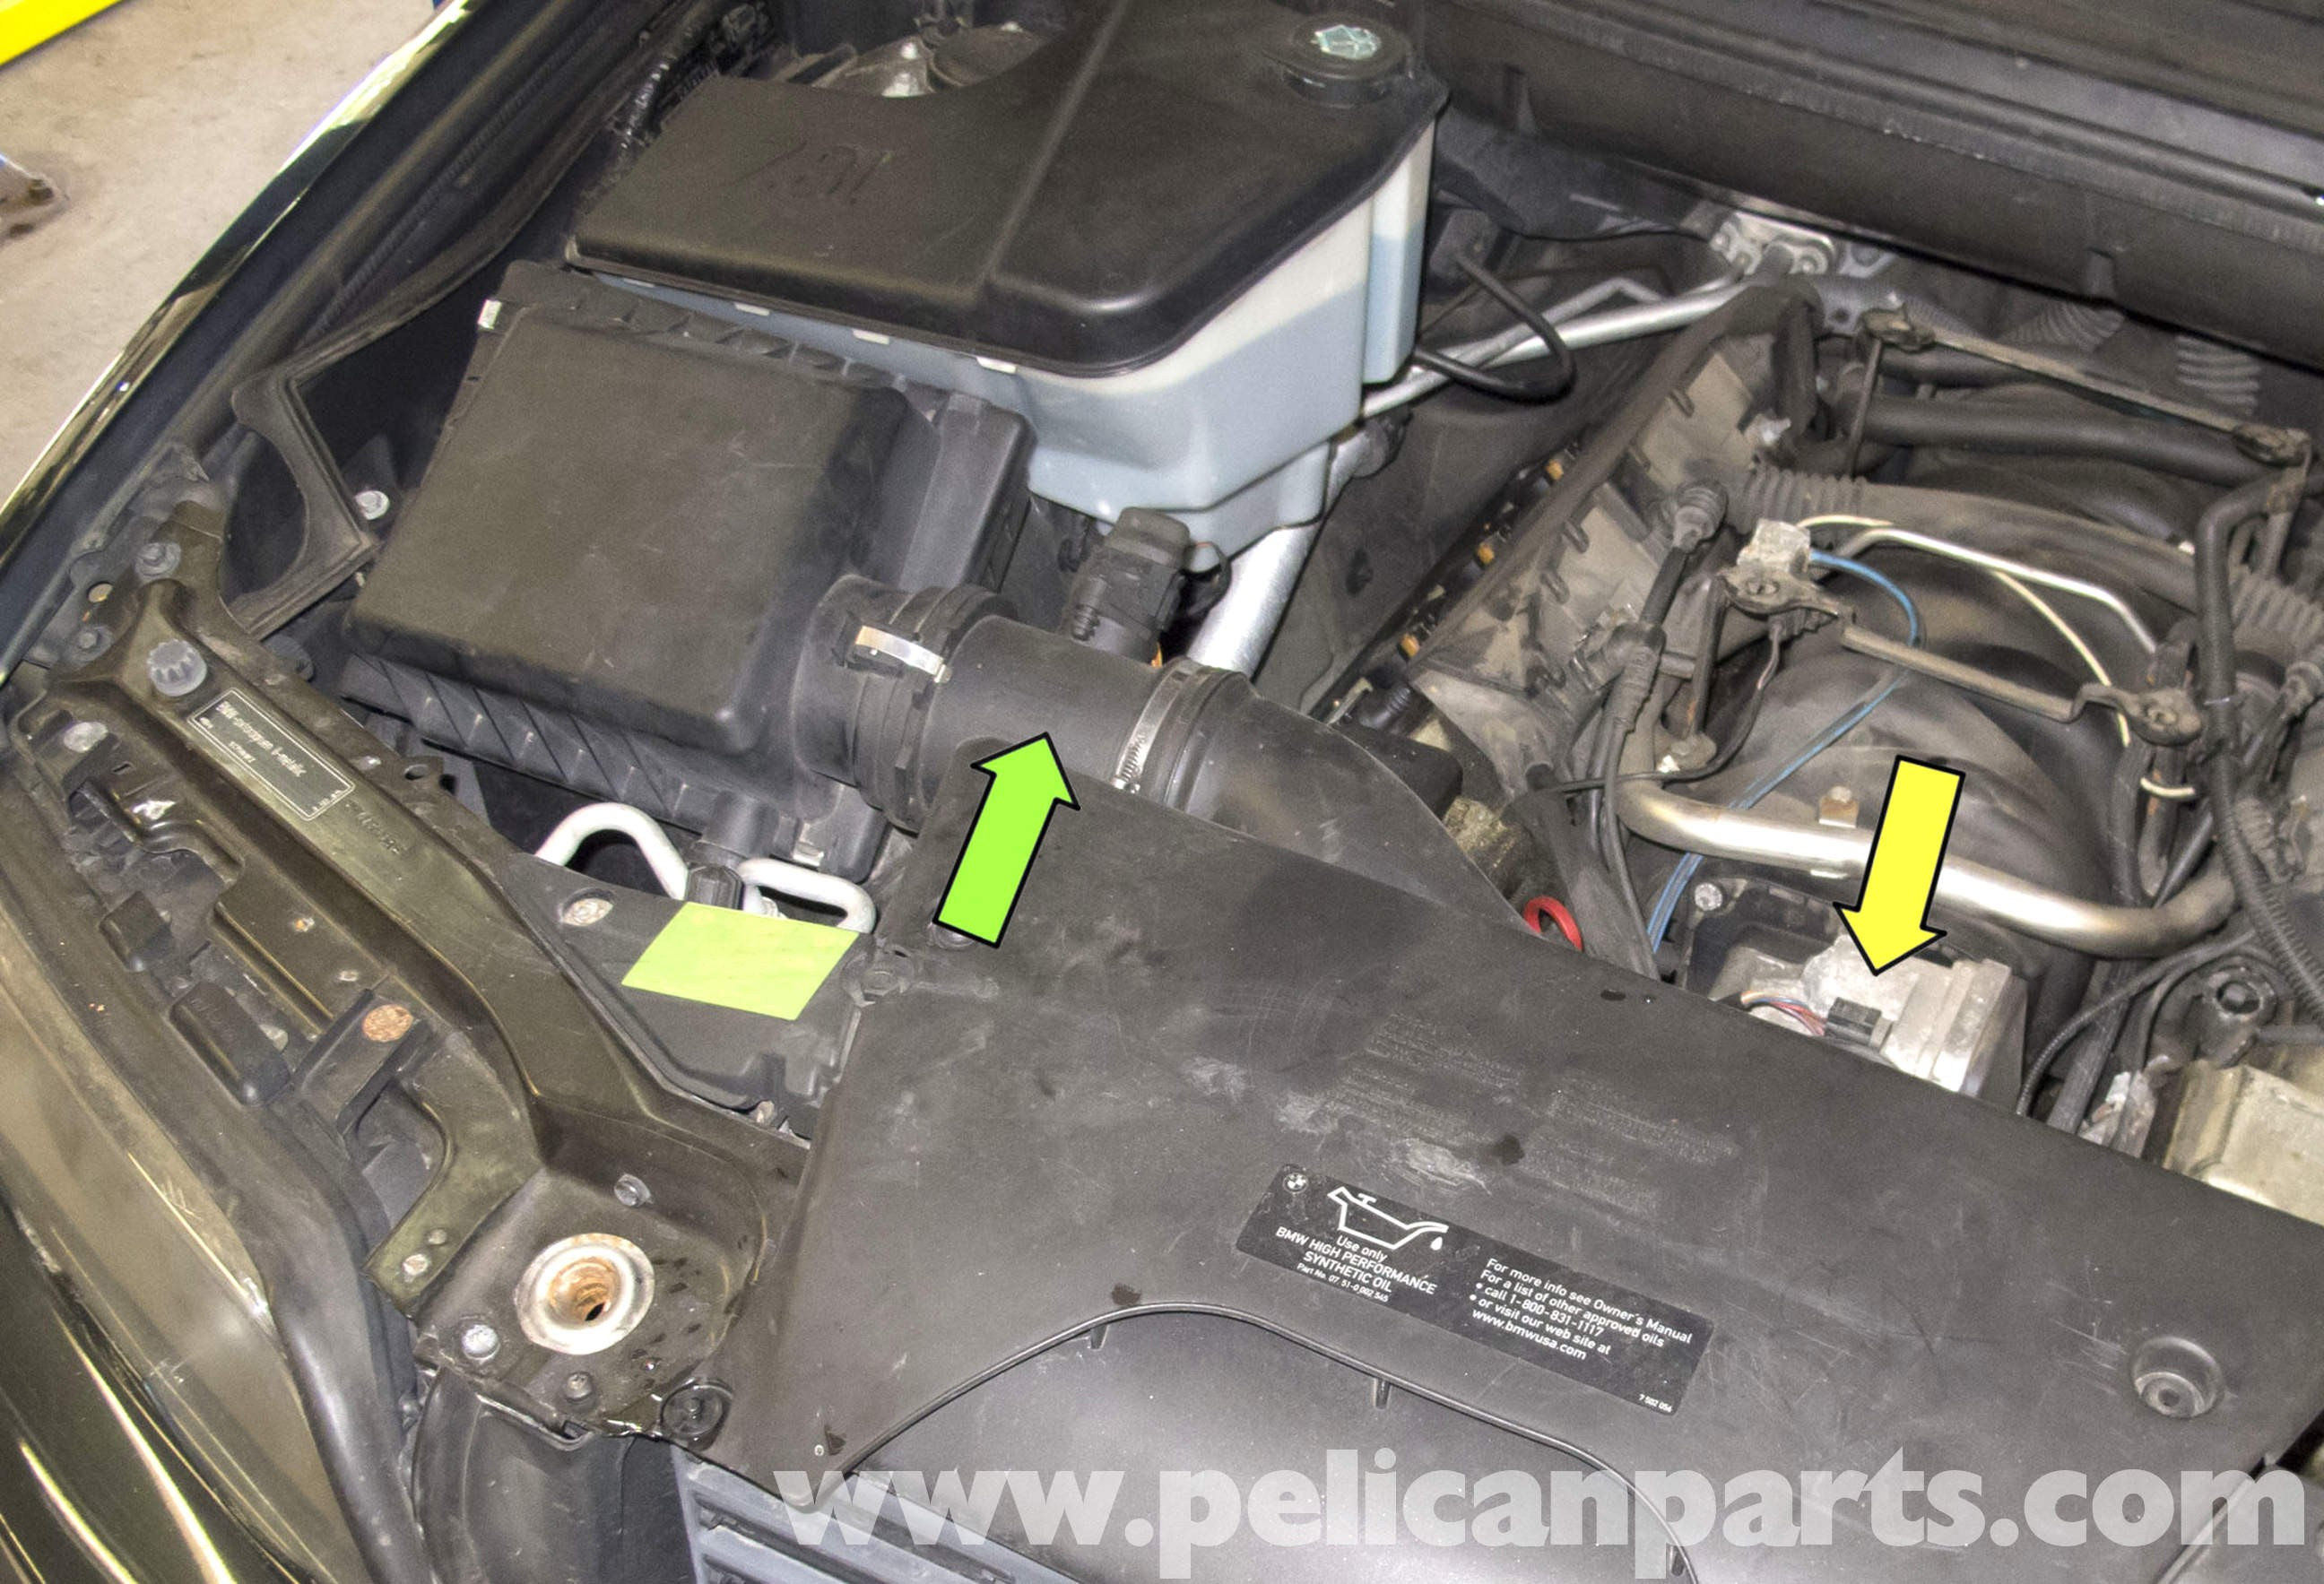 2005 Bmw X5 Engine Diagram Bmw X5 Engine Cooling Fan Replacement E53 2000  2006 Of 2005